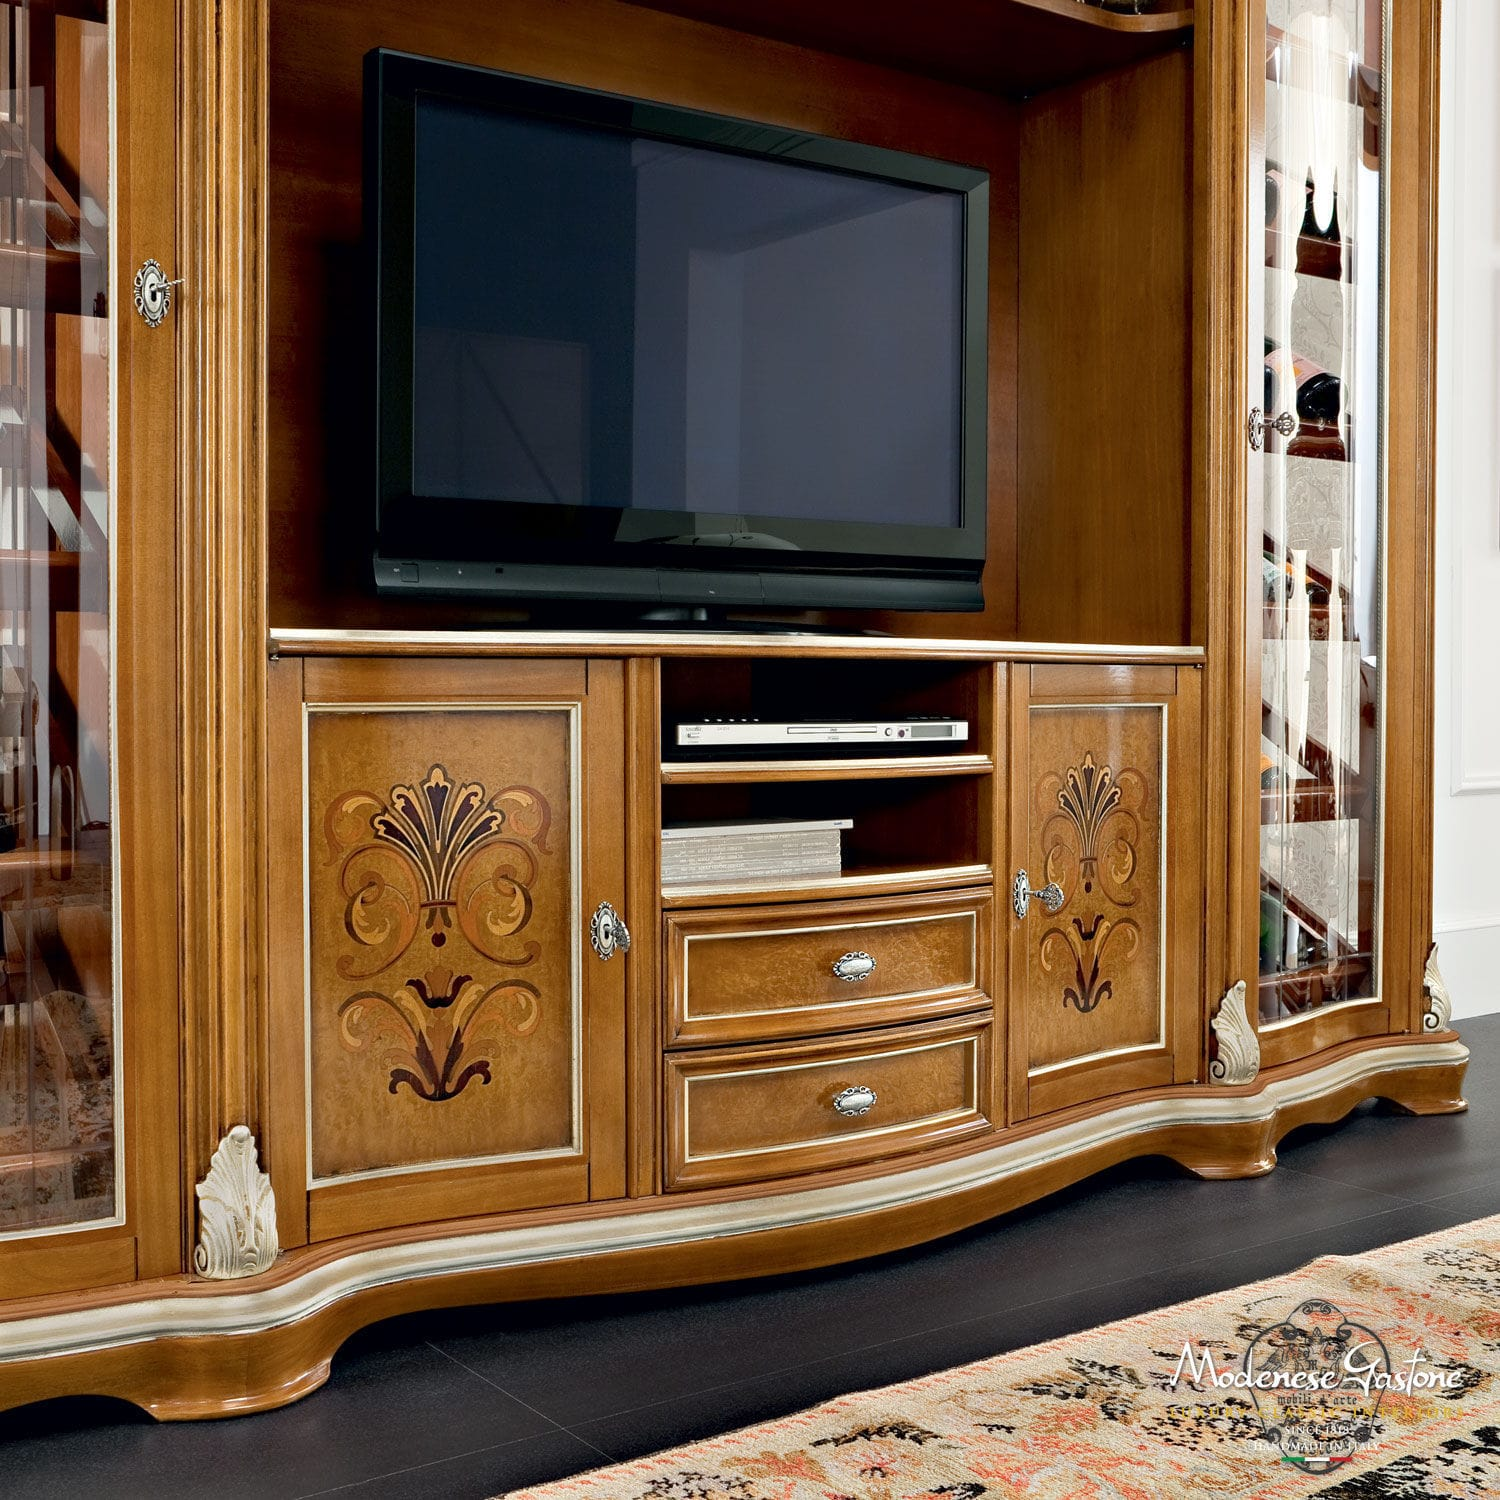 luxury wooden furniture storage. Classic TV Cabinet / Solid Wood BELLA VITA Modenese Gastone Luxury Furniture Wooden Storage O